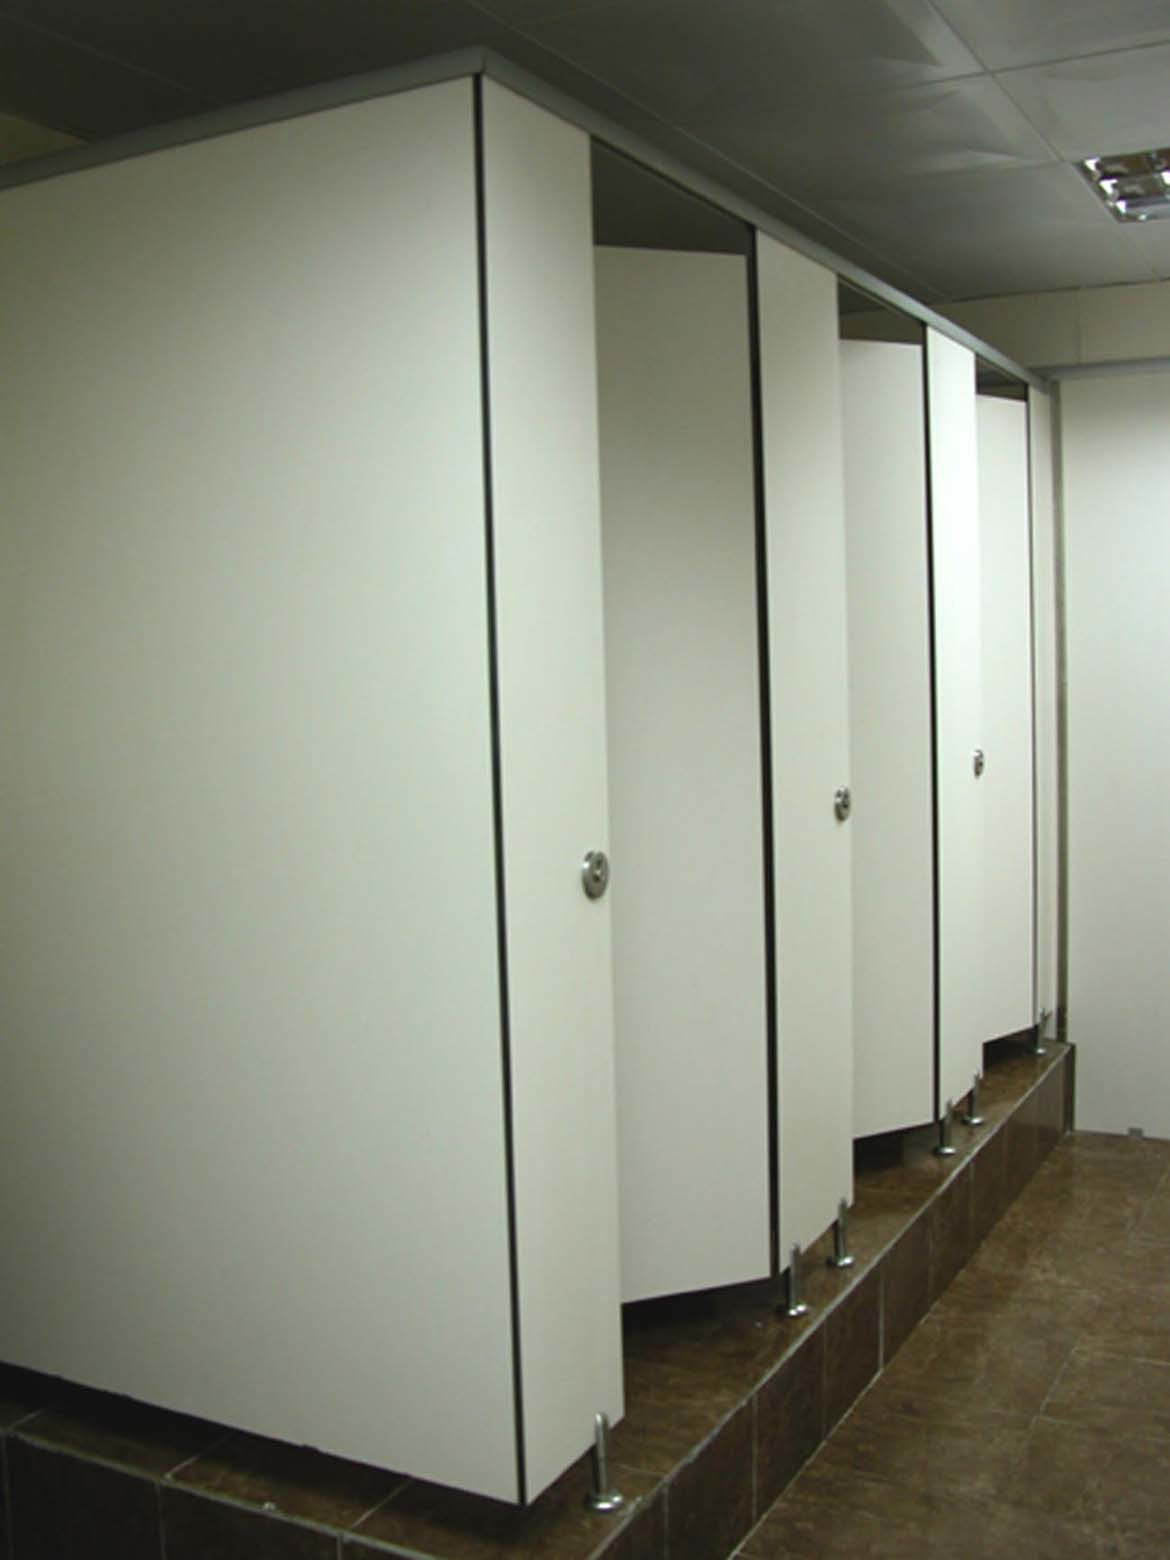 Bathroom Partitions 28 Images Toilet Partitions Darby Doors Llc Ironwood Manufacturing